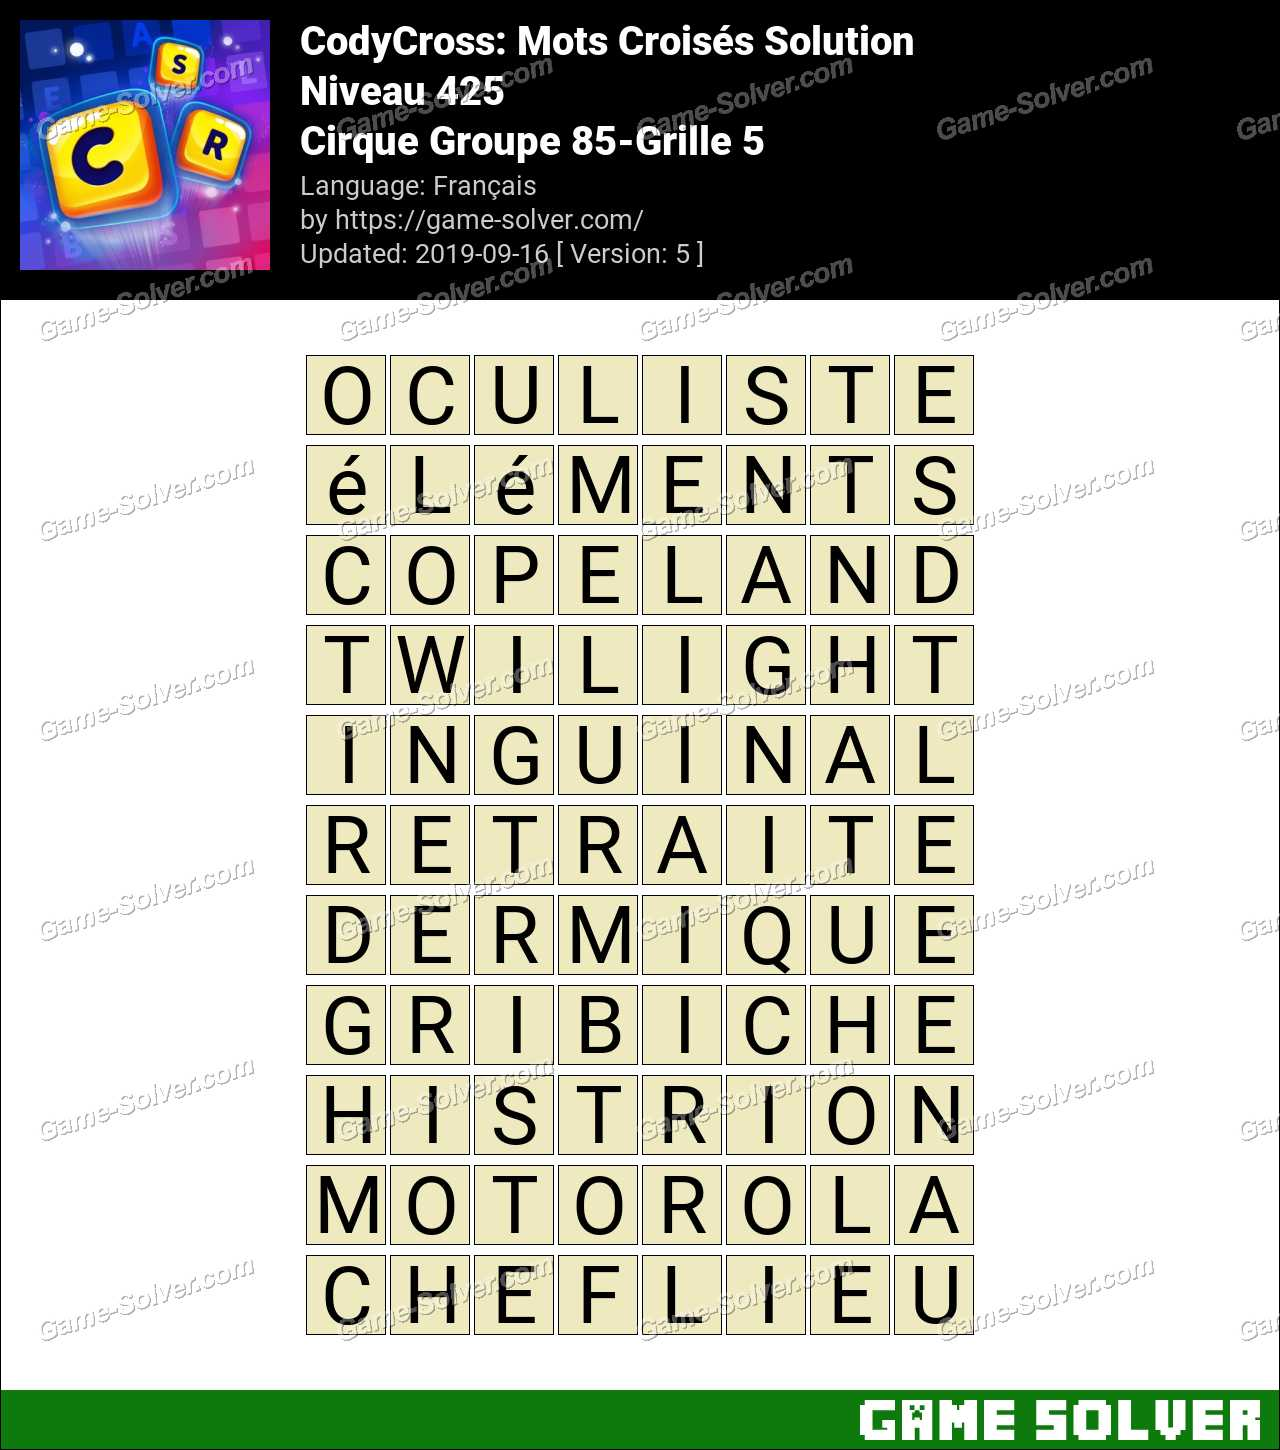 CodyCross Cirque Groupe 85-Grille 5 Solution